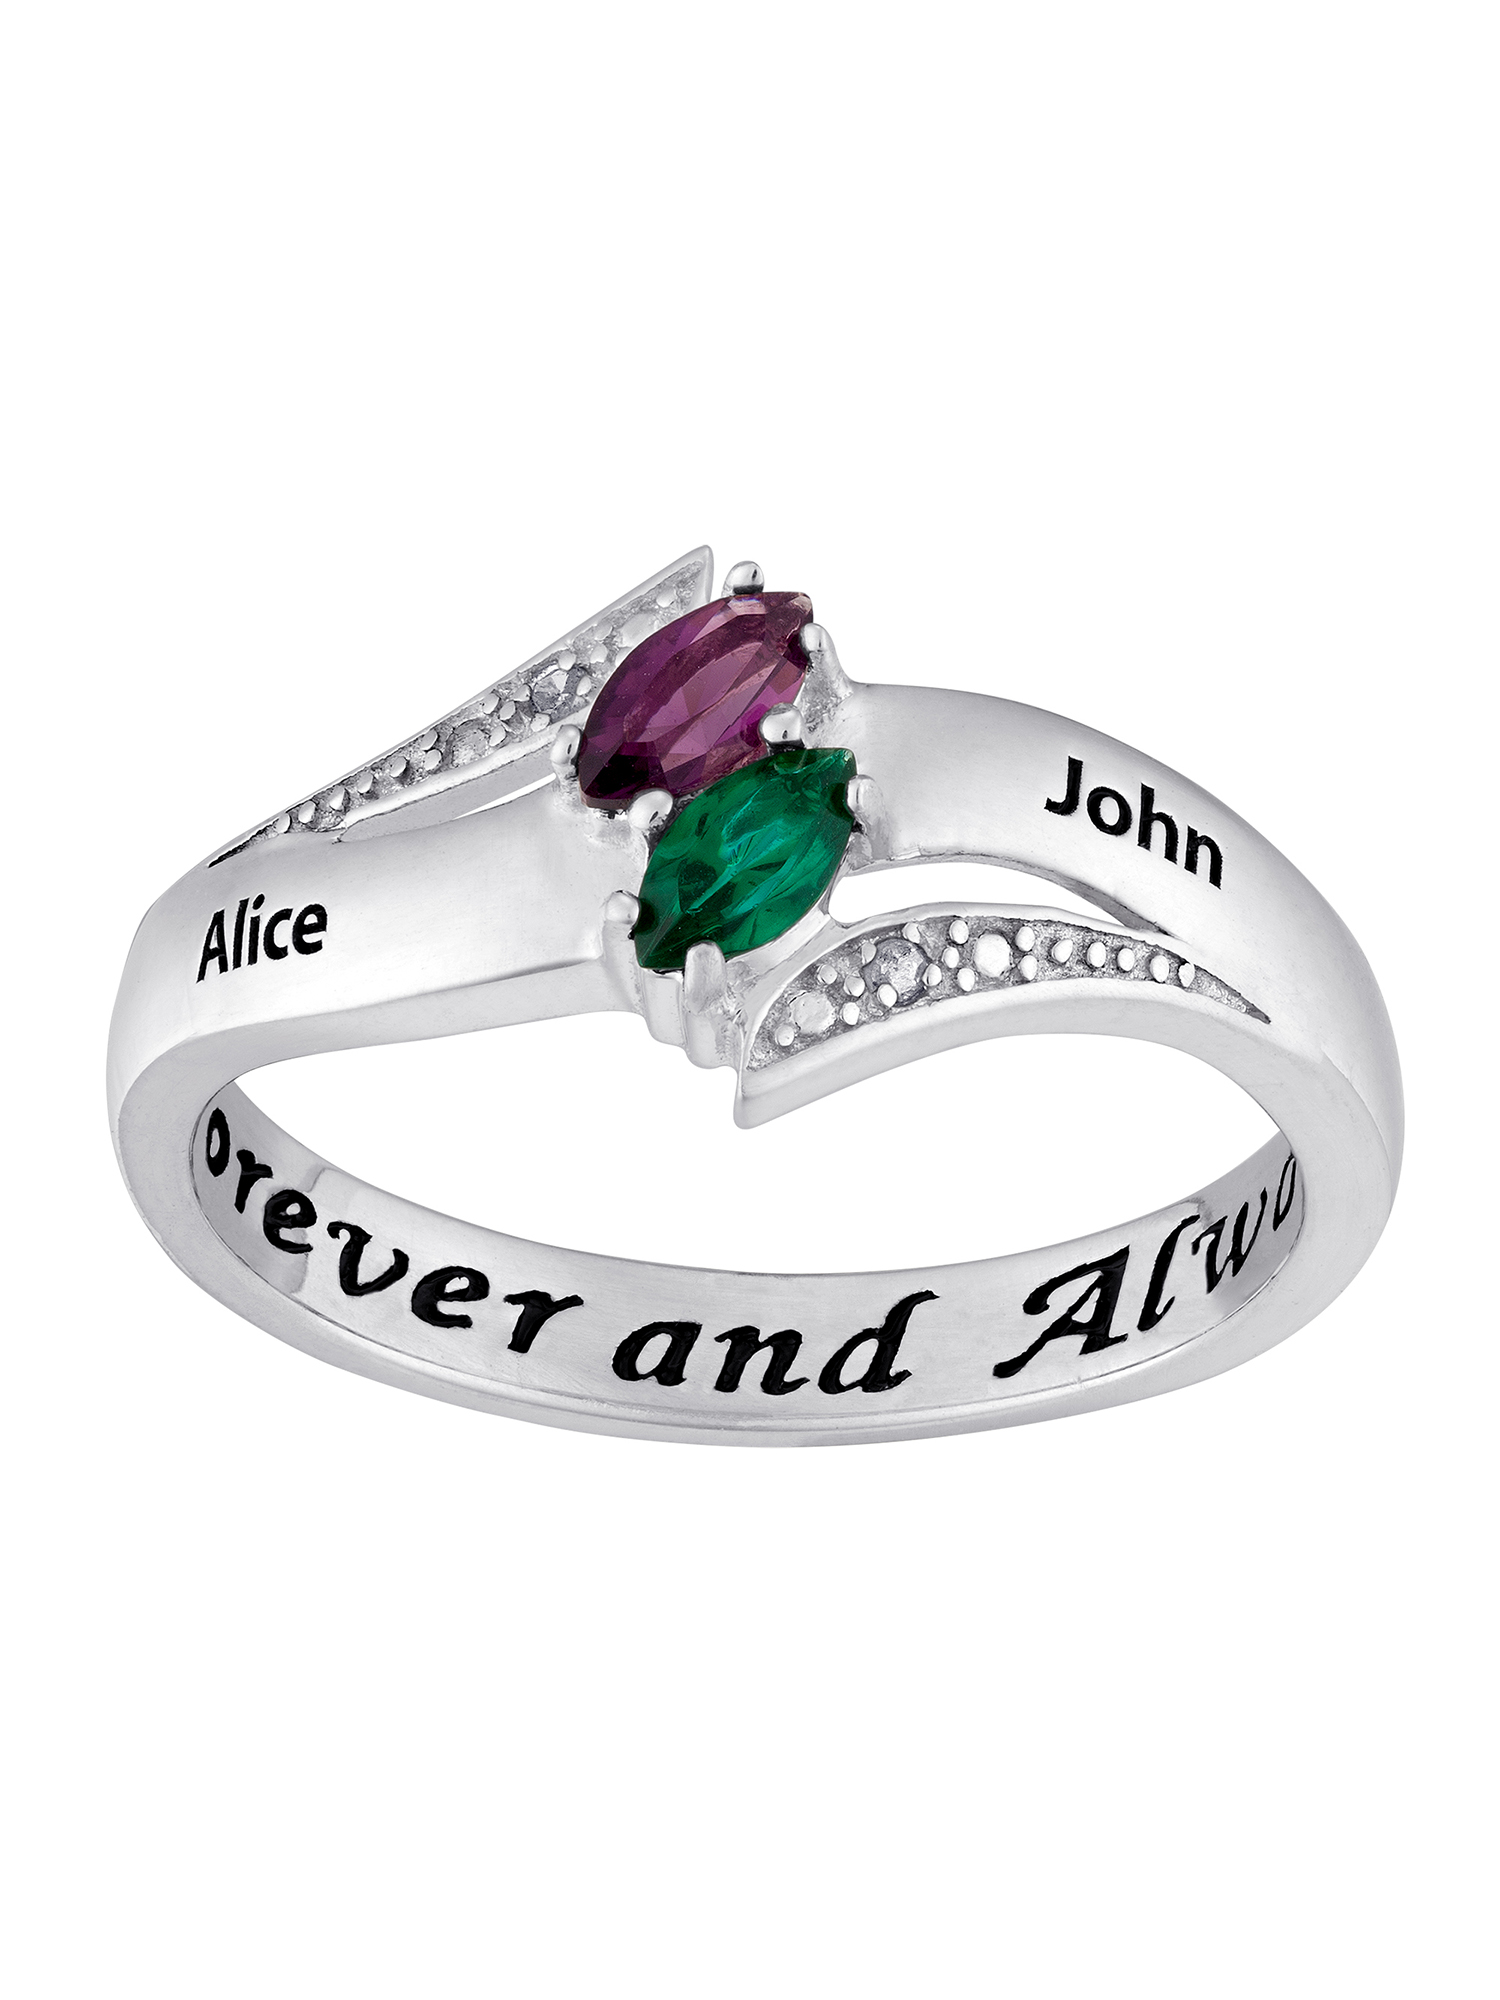 4849edda8c Couple's Personalized Promise Ring in Sterling Silver with Diamond Accents  - Walmart.com